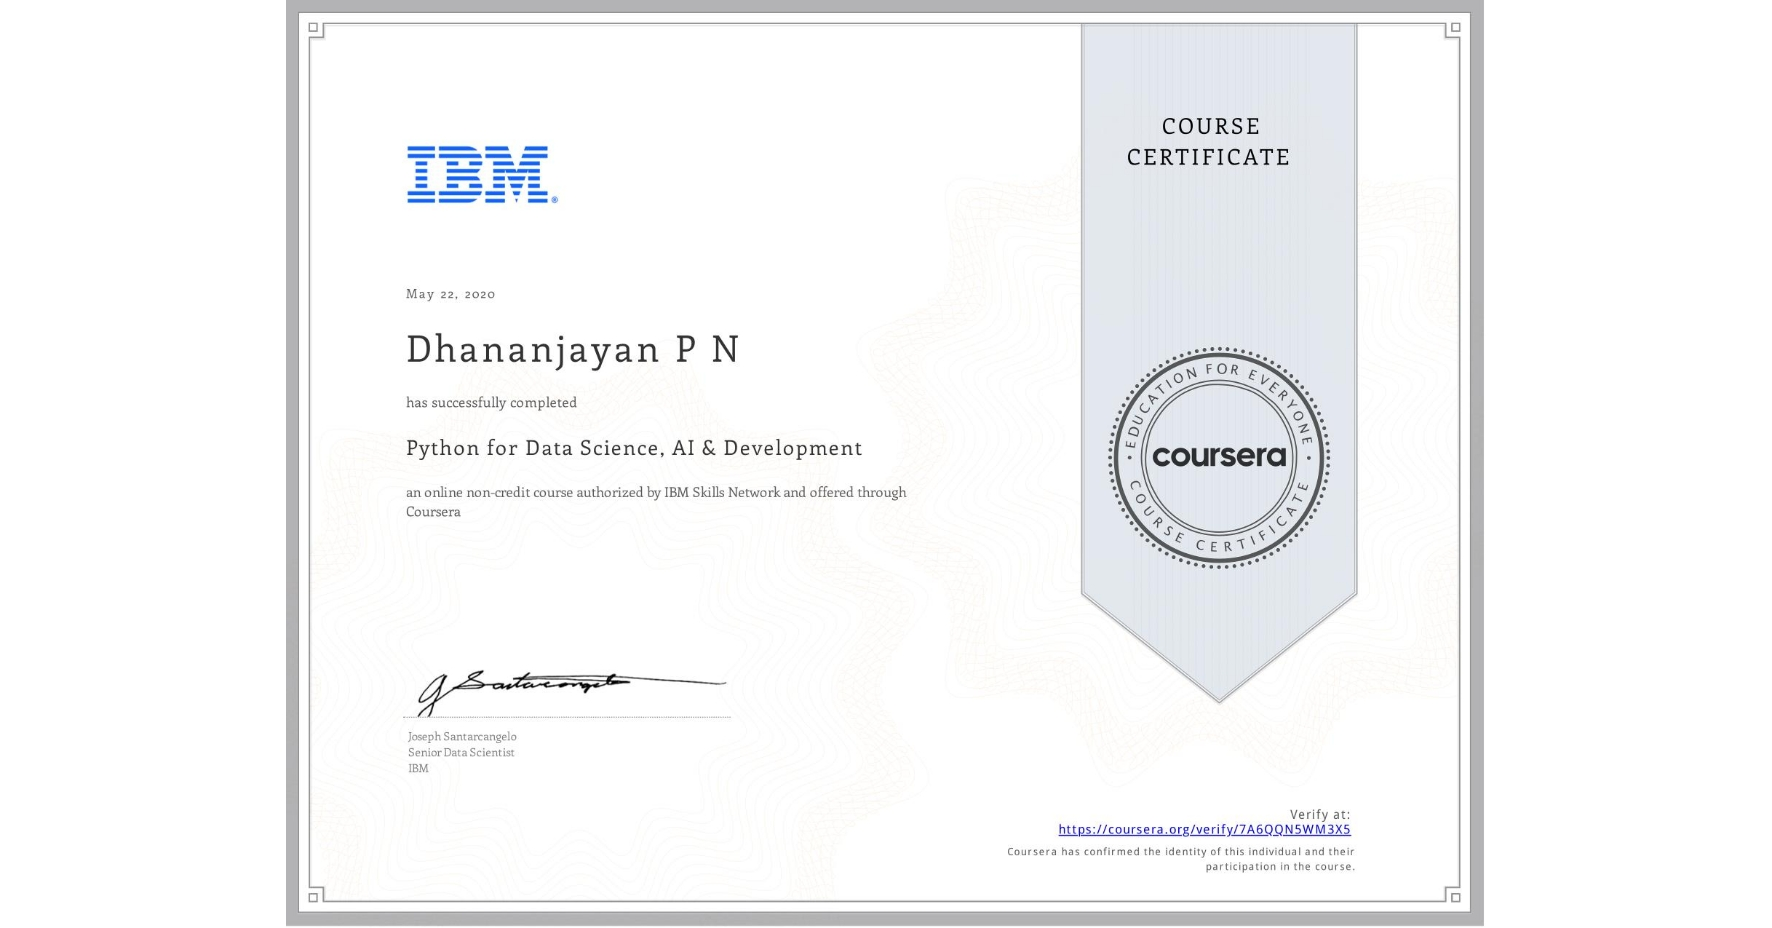 View certificate for Dhananjayan P N, Python for Data Science, AI & Development, an online non-credit course authorized by IBM and offered through Coursera